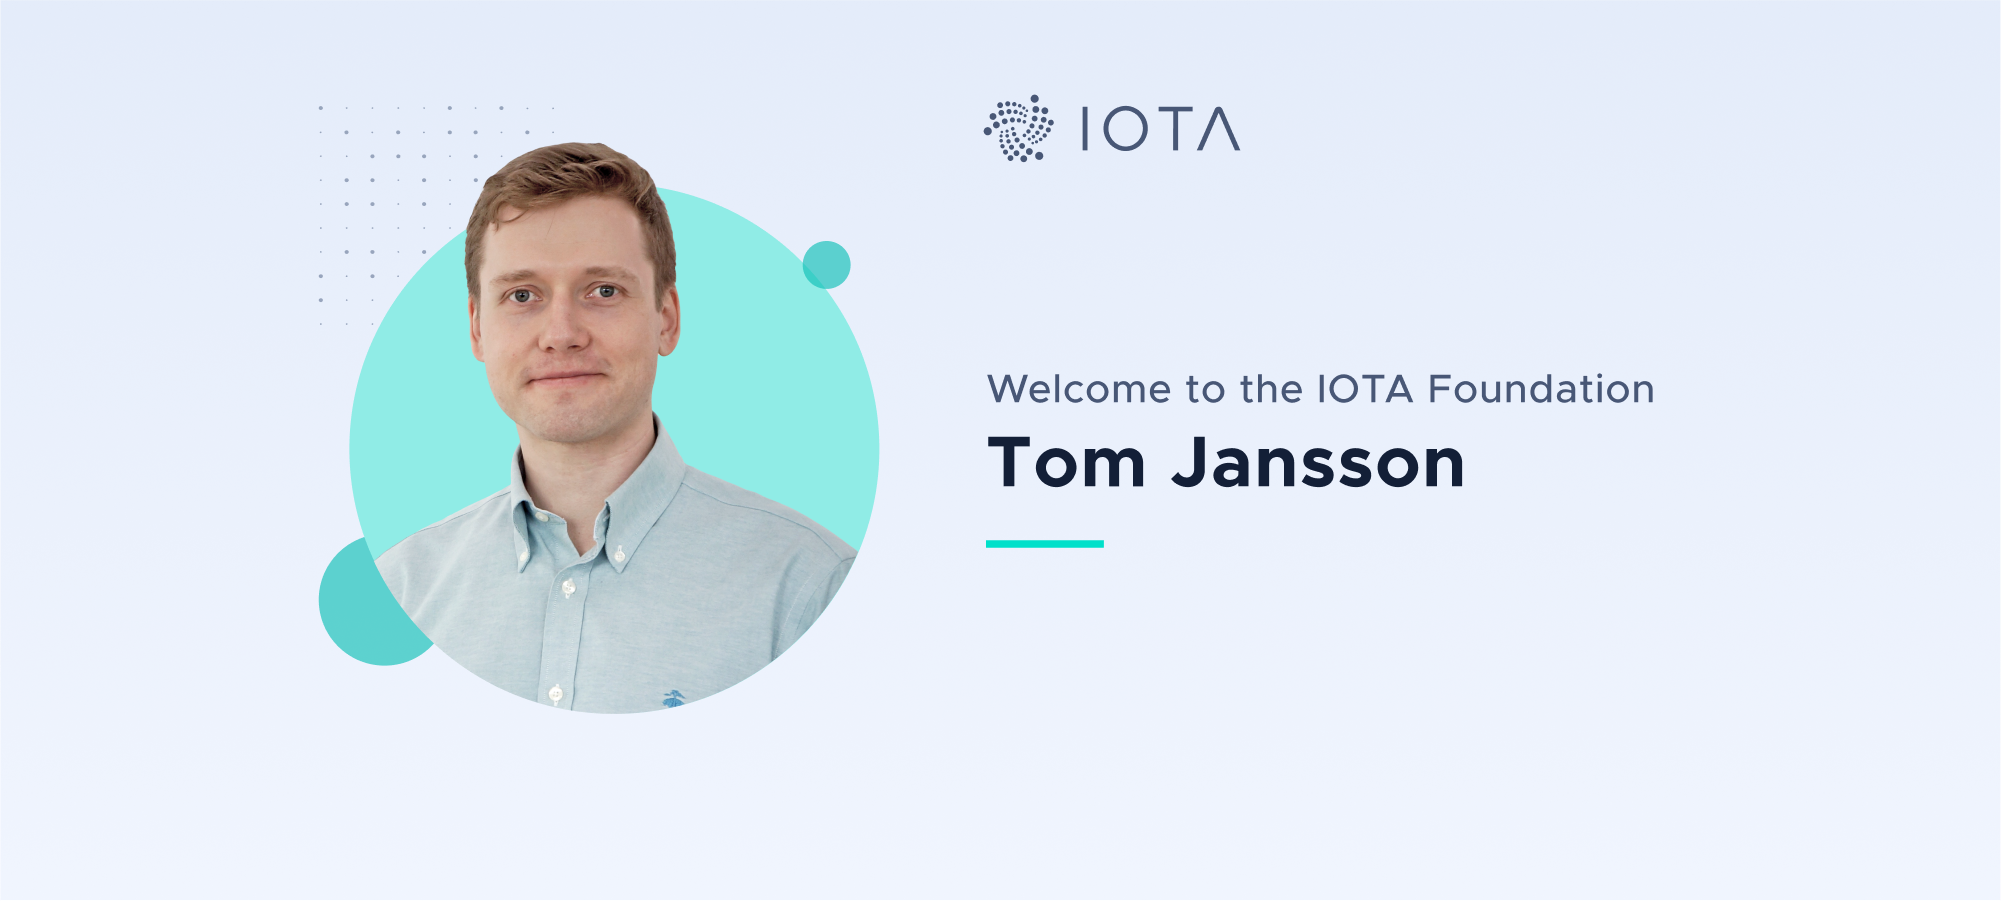 Welcome Tom Jansson to the IOTA Foundation